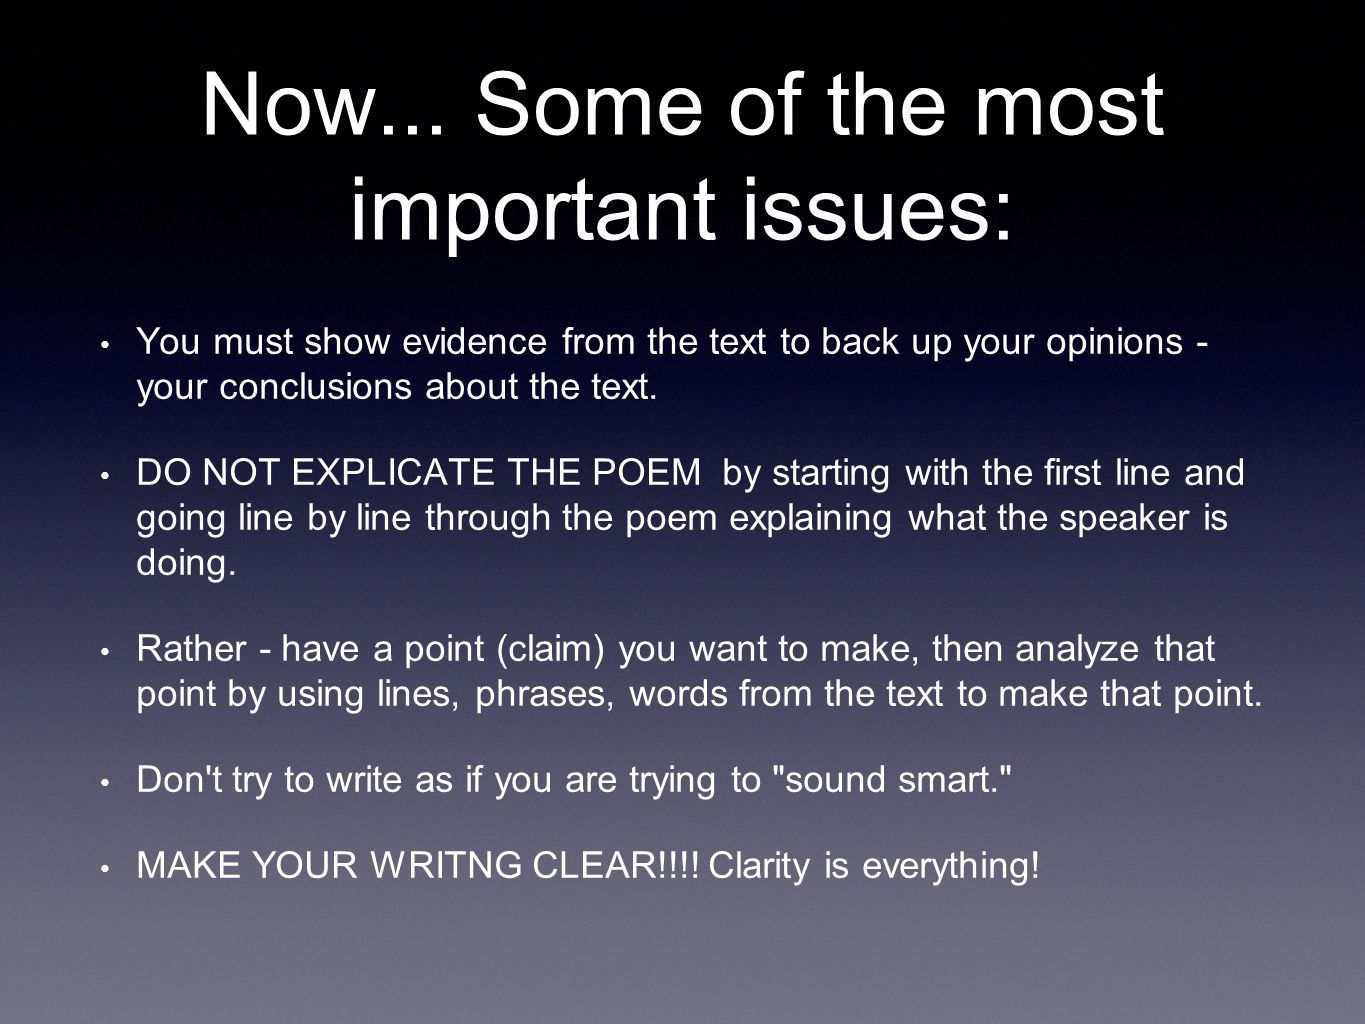 Now... Some of the most important issues: You must show evidence from the text to back up your opinions - your conclusions about the text. DO NOT EXPL